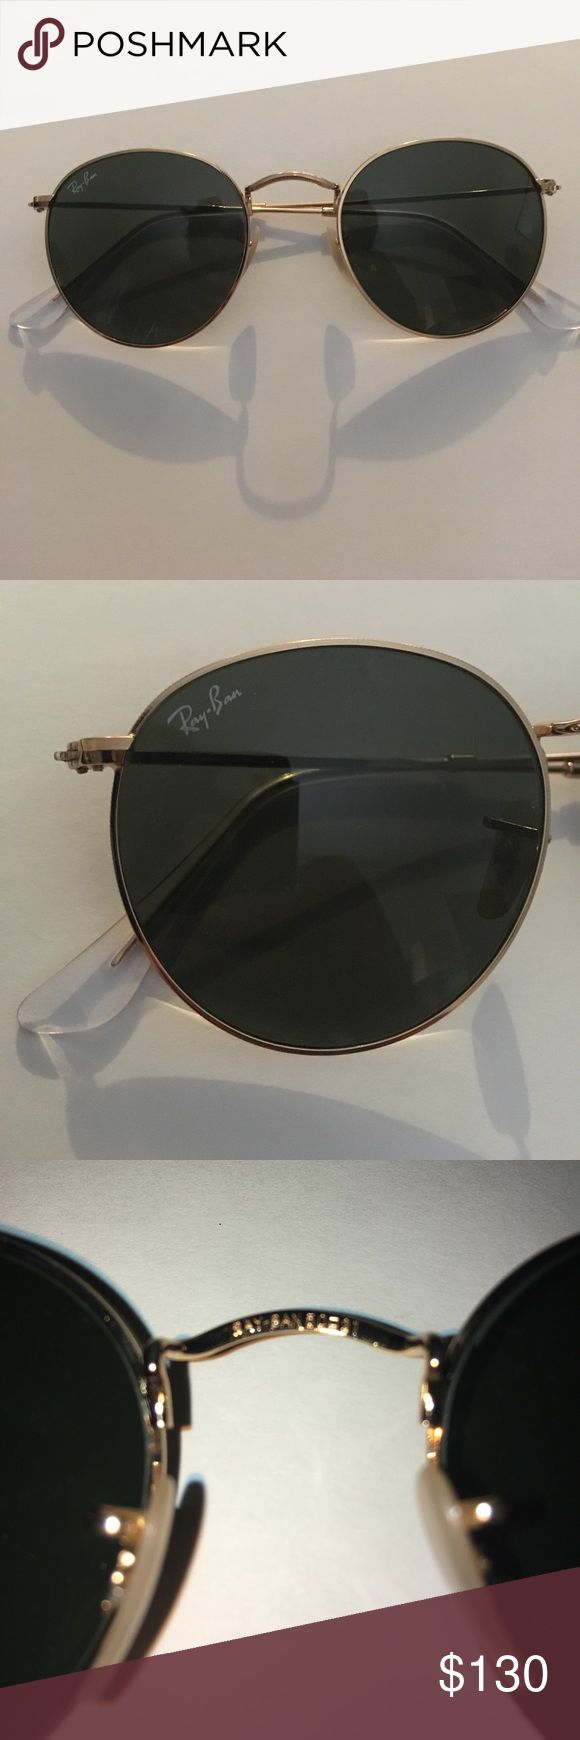 Rayban Round Sunglasses I bought these from J.crew. I've worn them all of two times. They just don't work for me. 100% authentic and in near brand new condition. No scratches whatsoever. I have included my online receipt for reassurance. It comes with the original case Pleas feel free to ask any questions. Thanks for looking. Ray-Ban Accessories Glasses